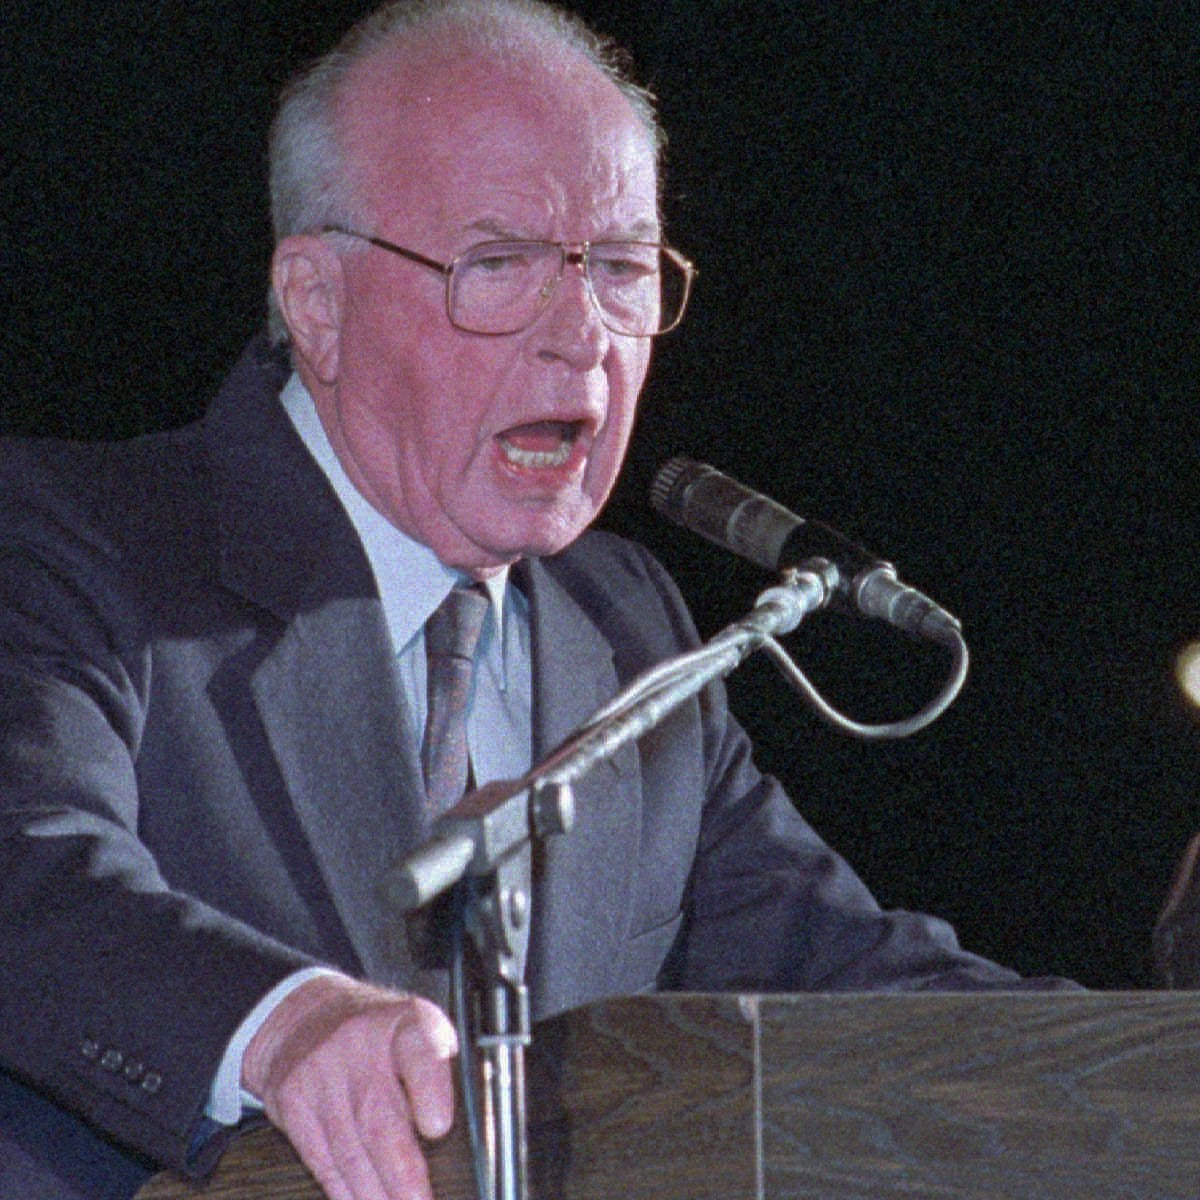 Israel's Yitzhak Rabin assassinated at peace rally - archive, 1995 | Middle  East and North Africa | The Guardian